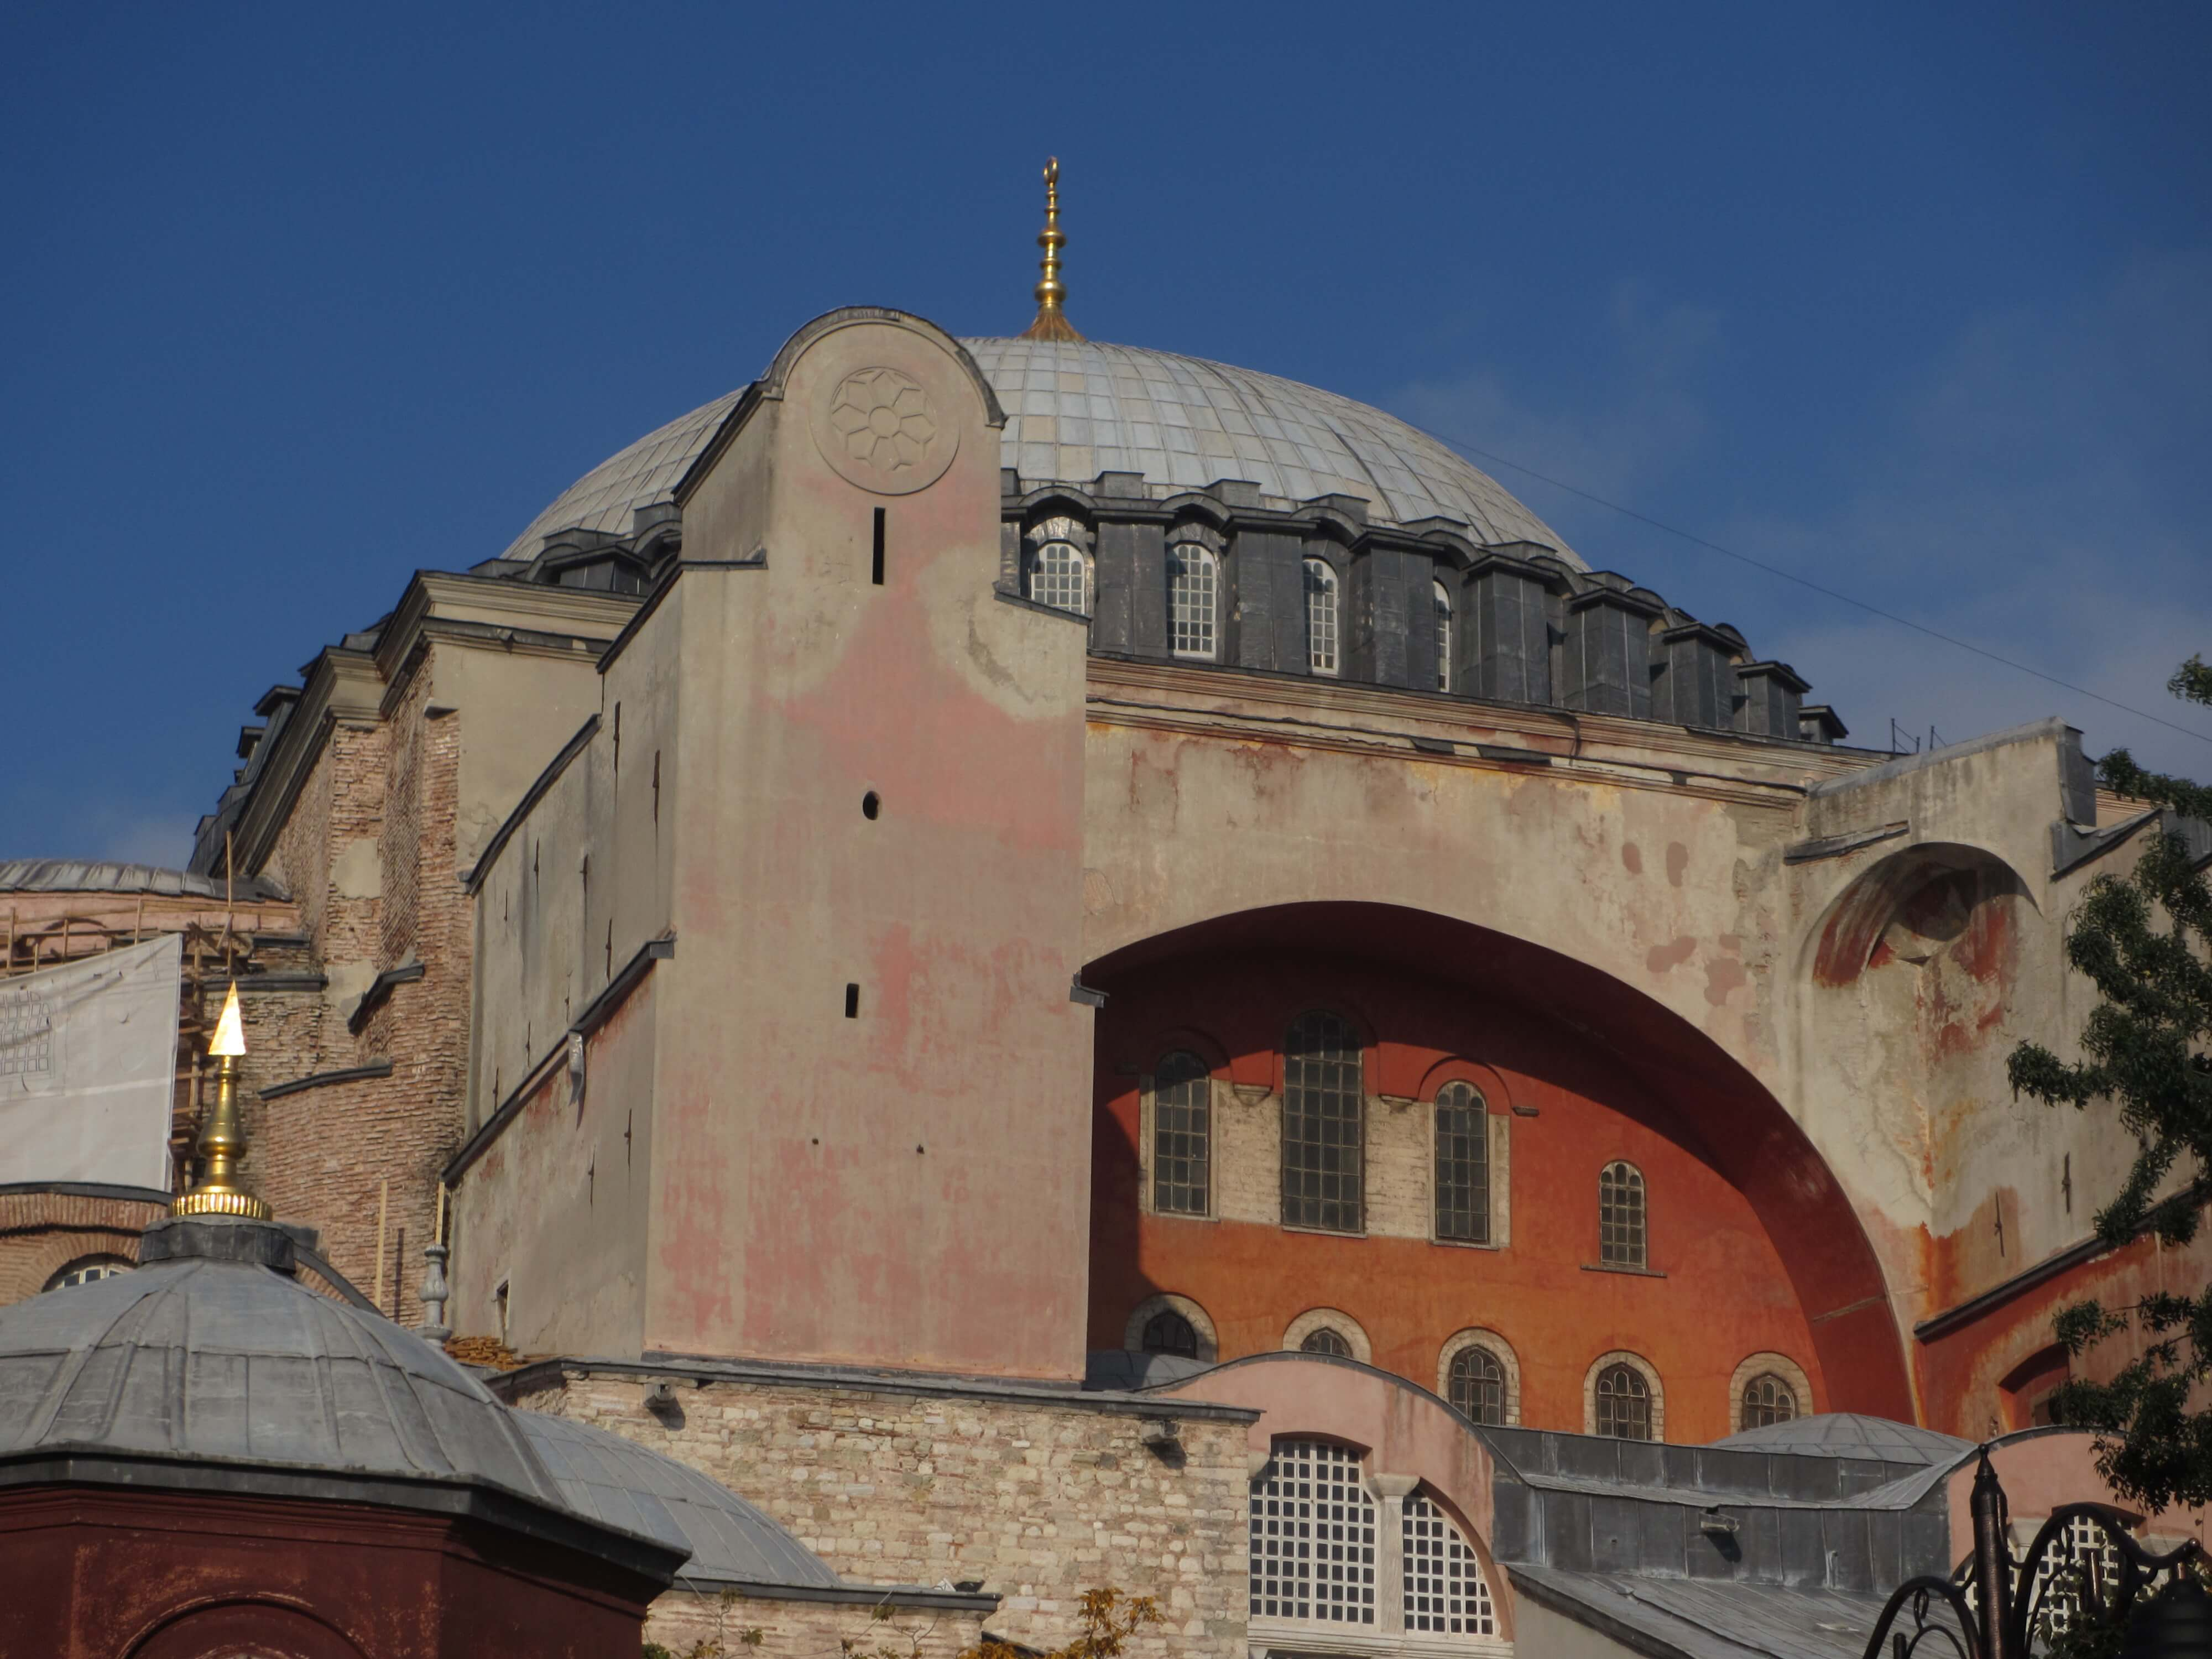 domed arch of Hagia Sophia in Istanbul